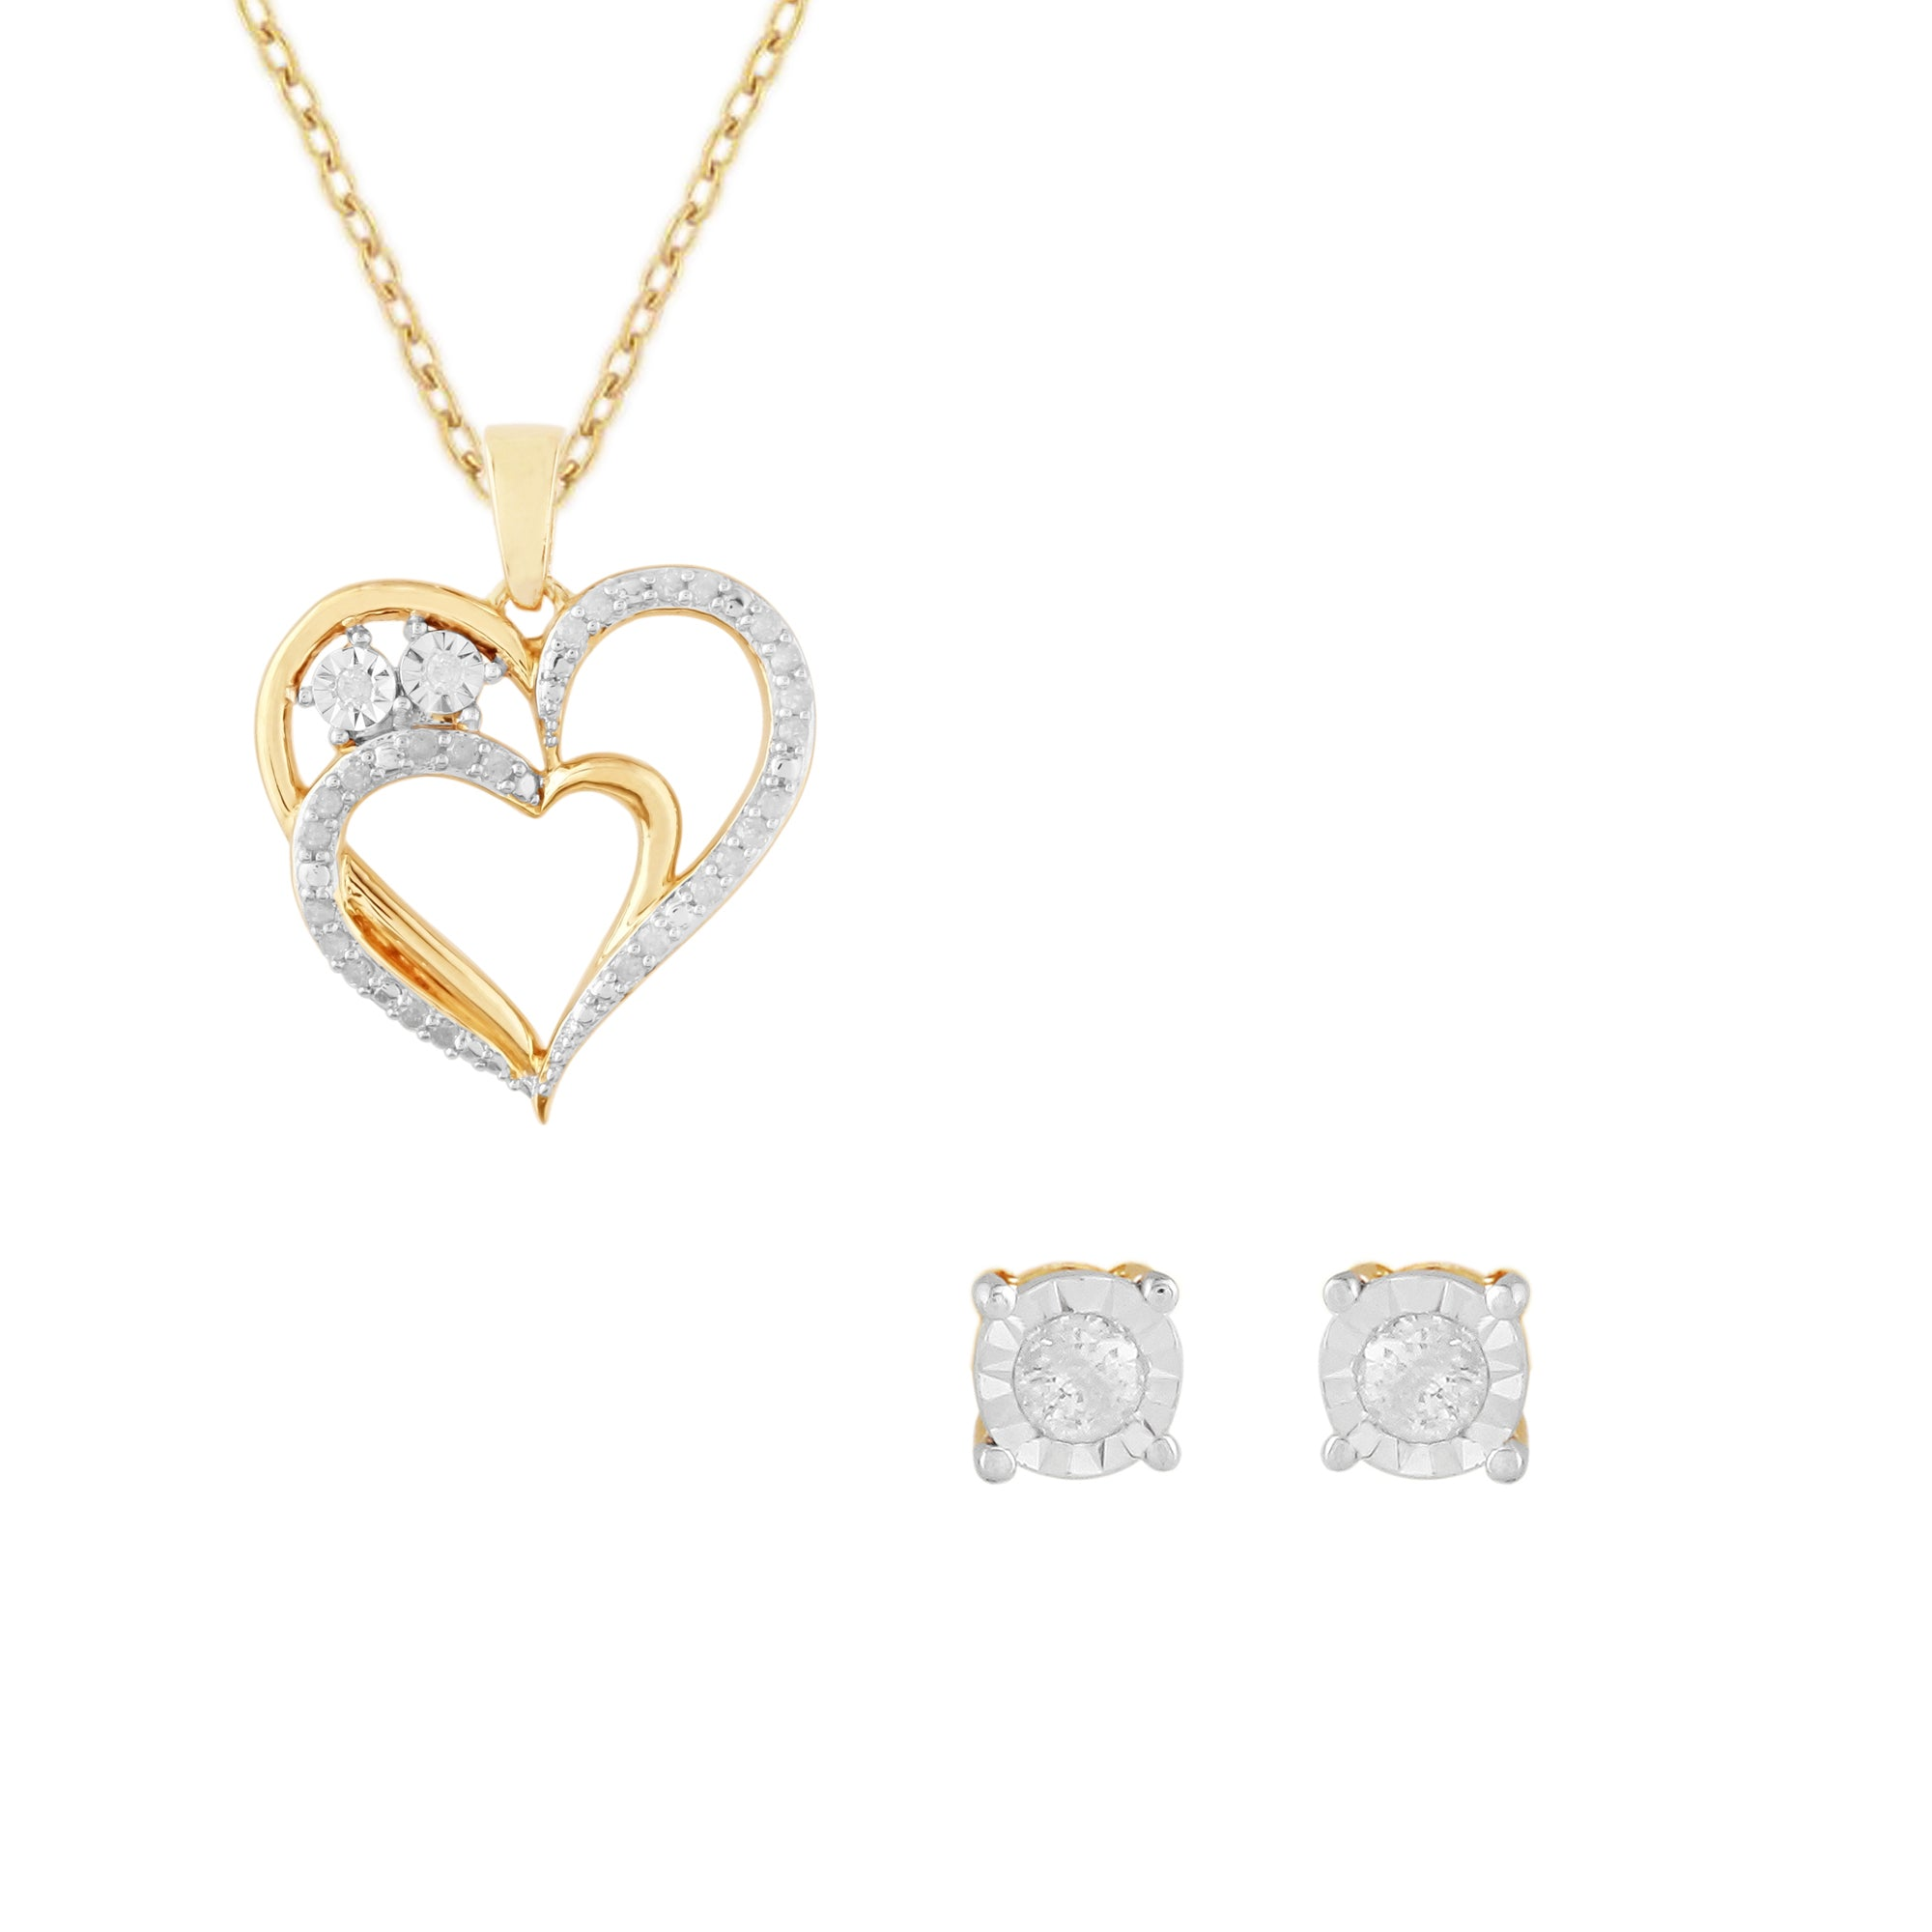 14cttw diamond heart 2 piece pendant and earring set little 14cttw diamond heart 2 piece pendant and earring set mozeypictures Image collections